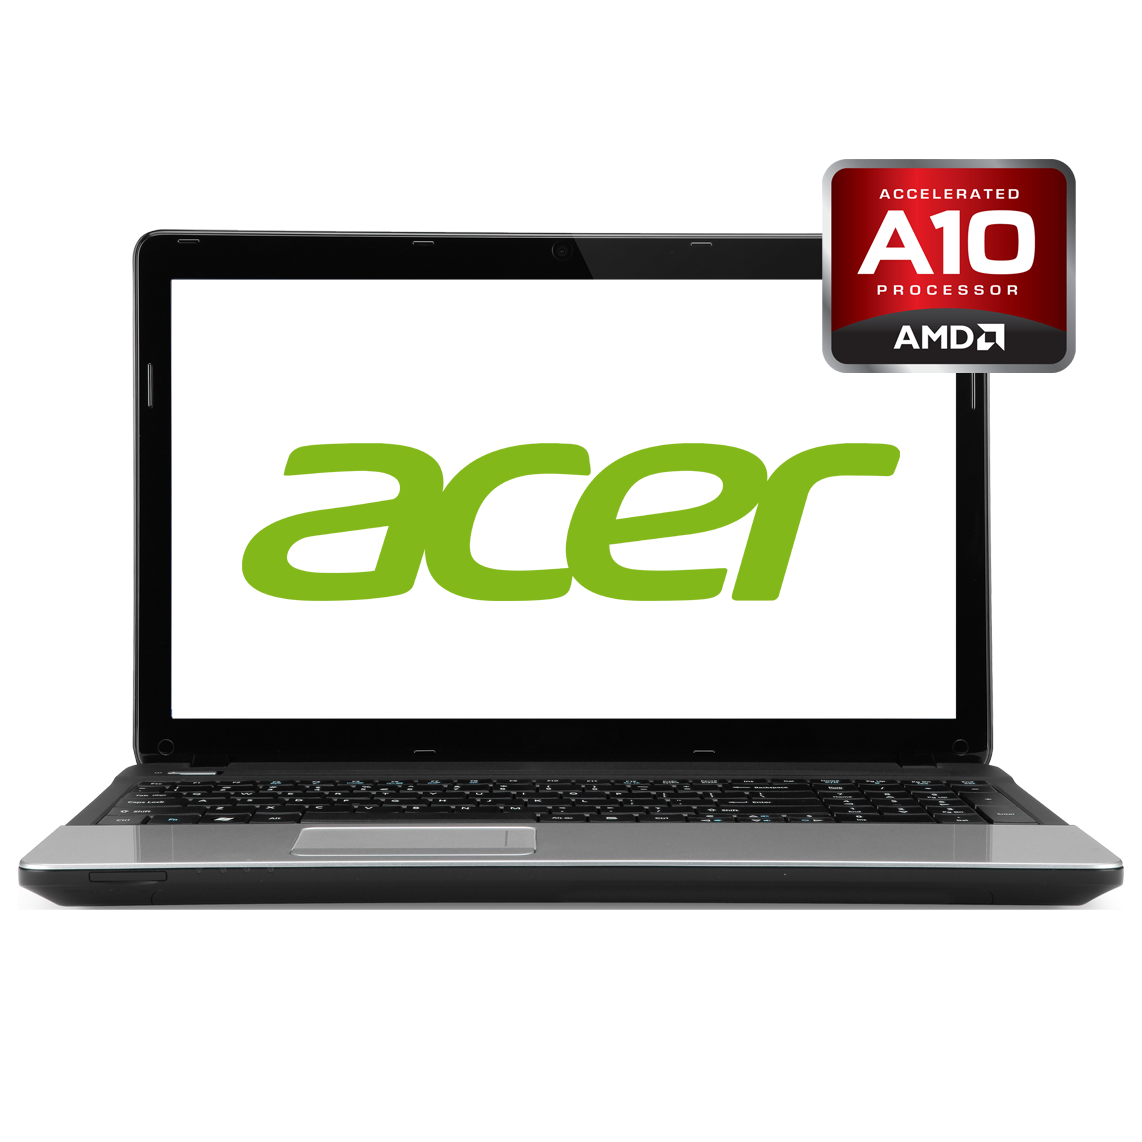 Acer - 13 inch AMD A10